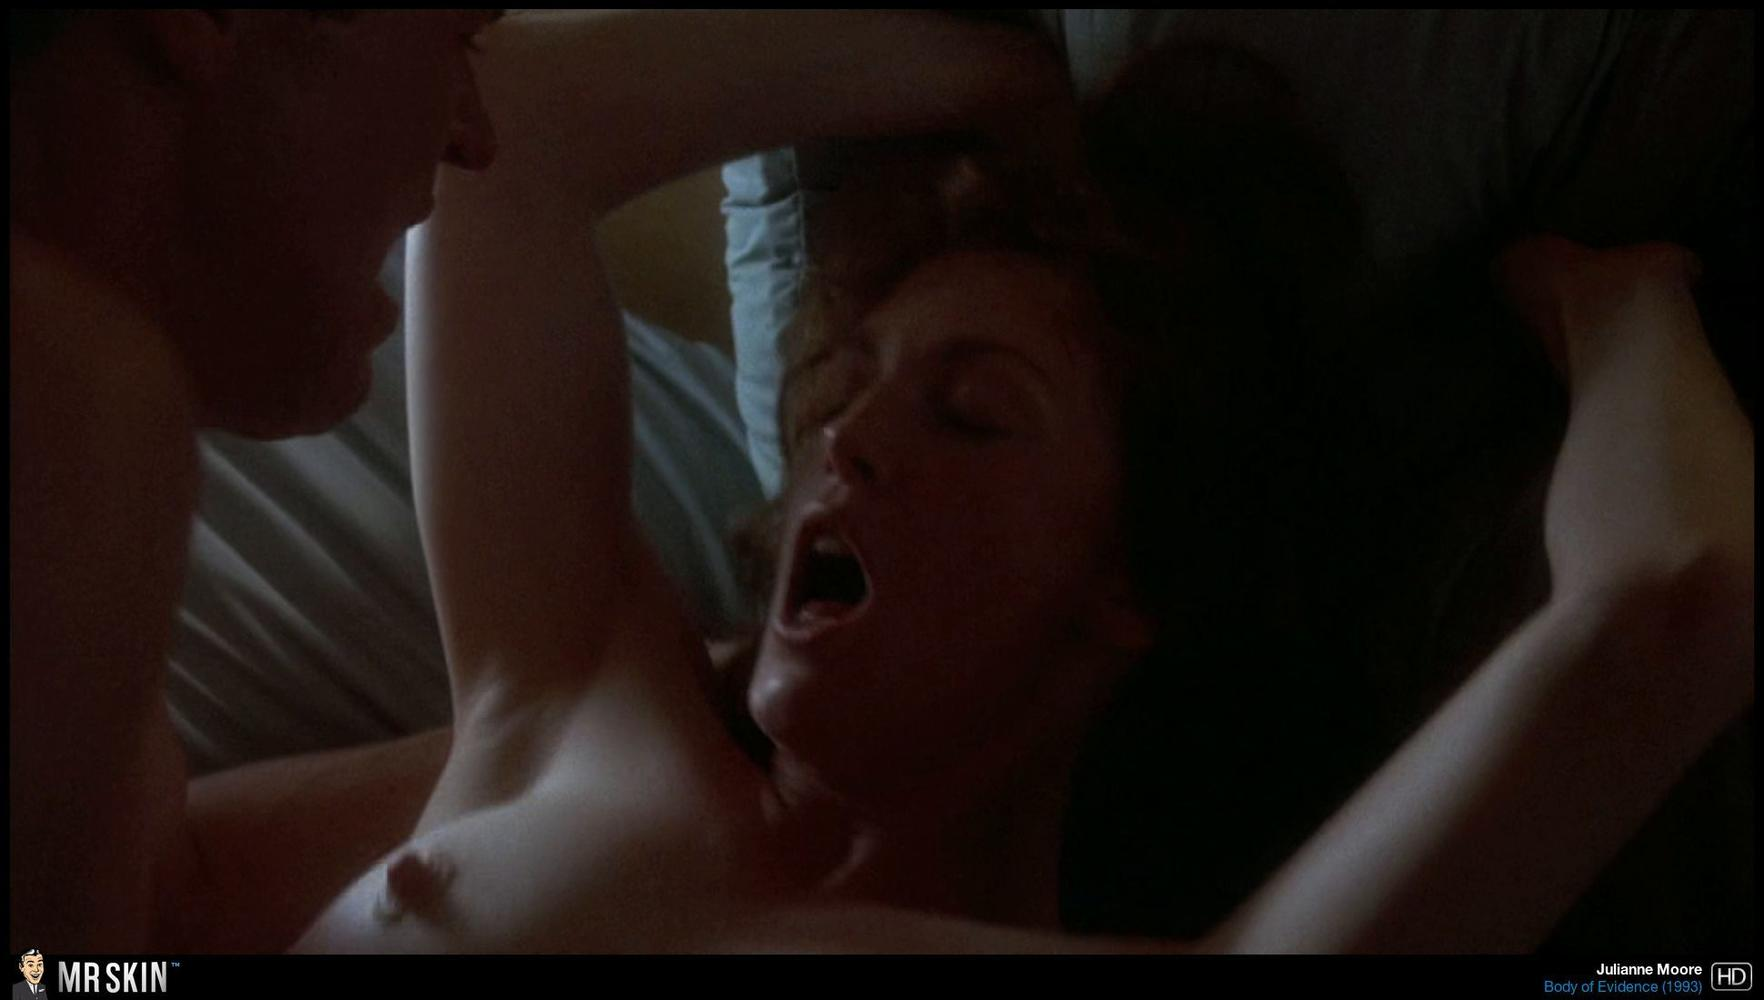 Ana Ayora Nude nude and noteworthy on hulu: body of evidence, the gift, private